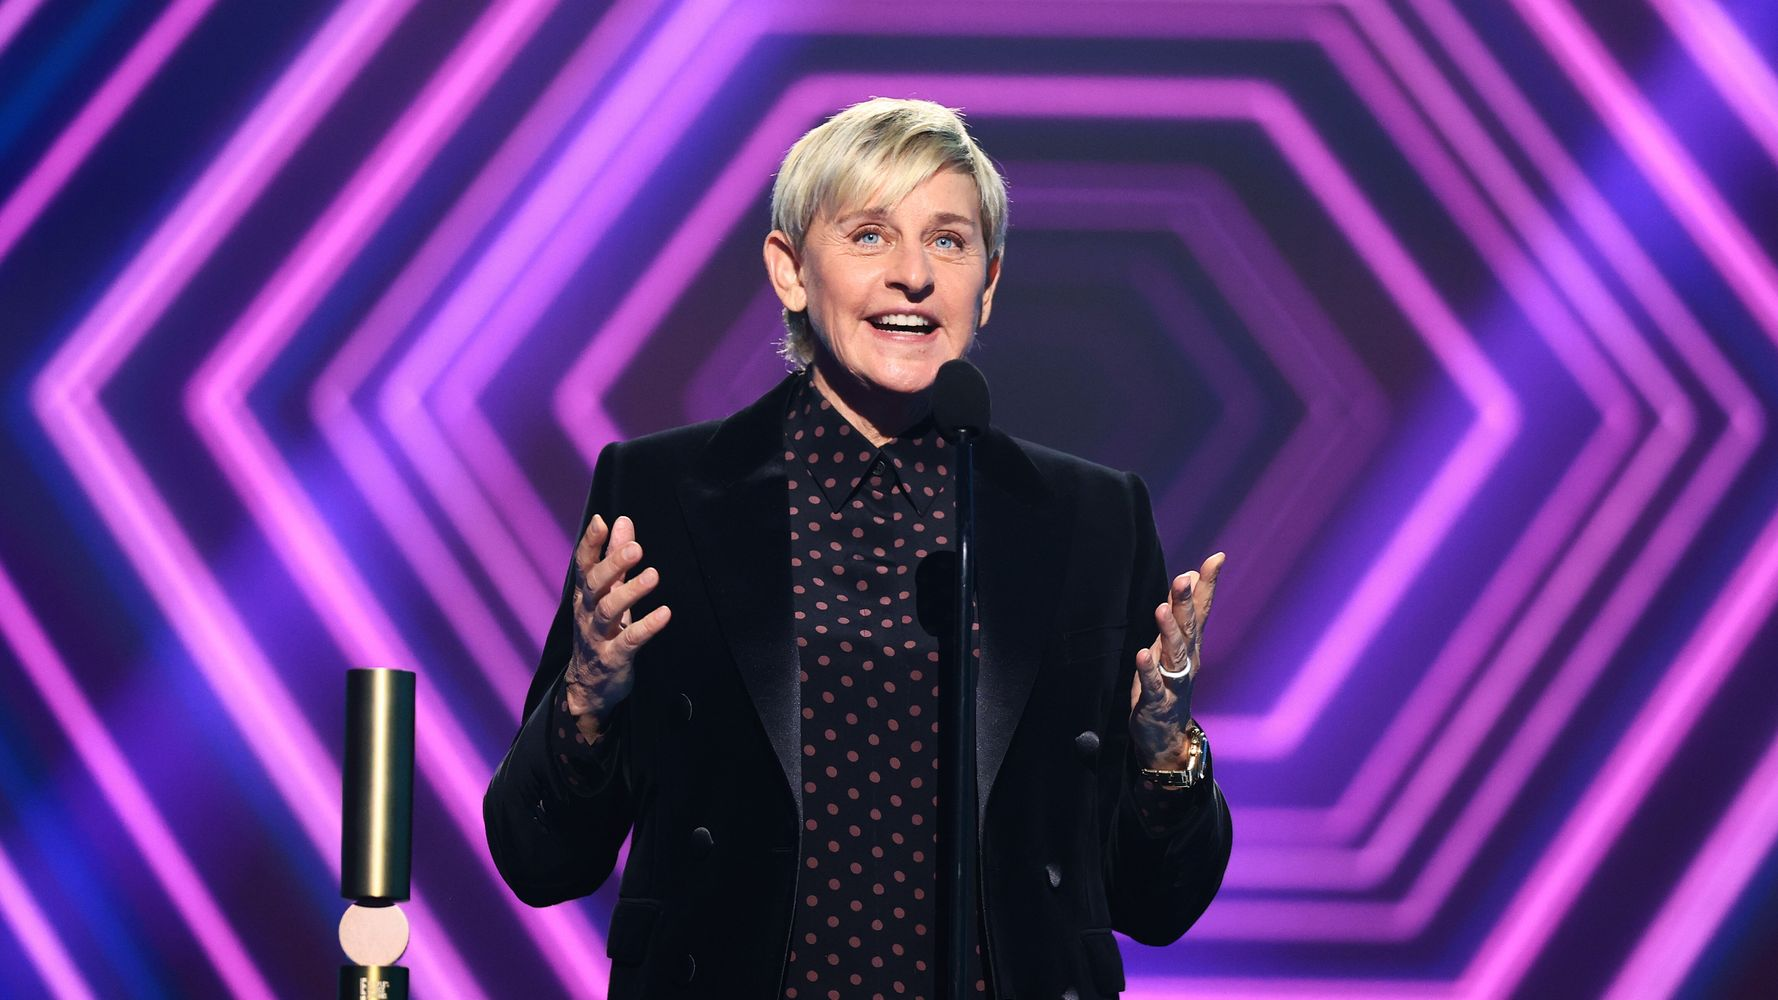 Ellen DeGeneres Thanks Her 'Amazing Staff' At People's Choice Awards